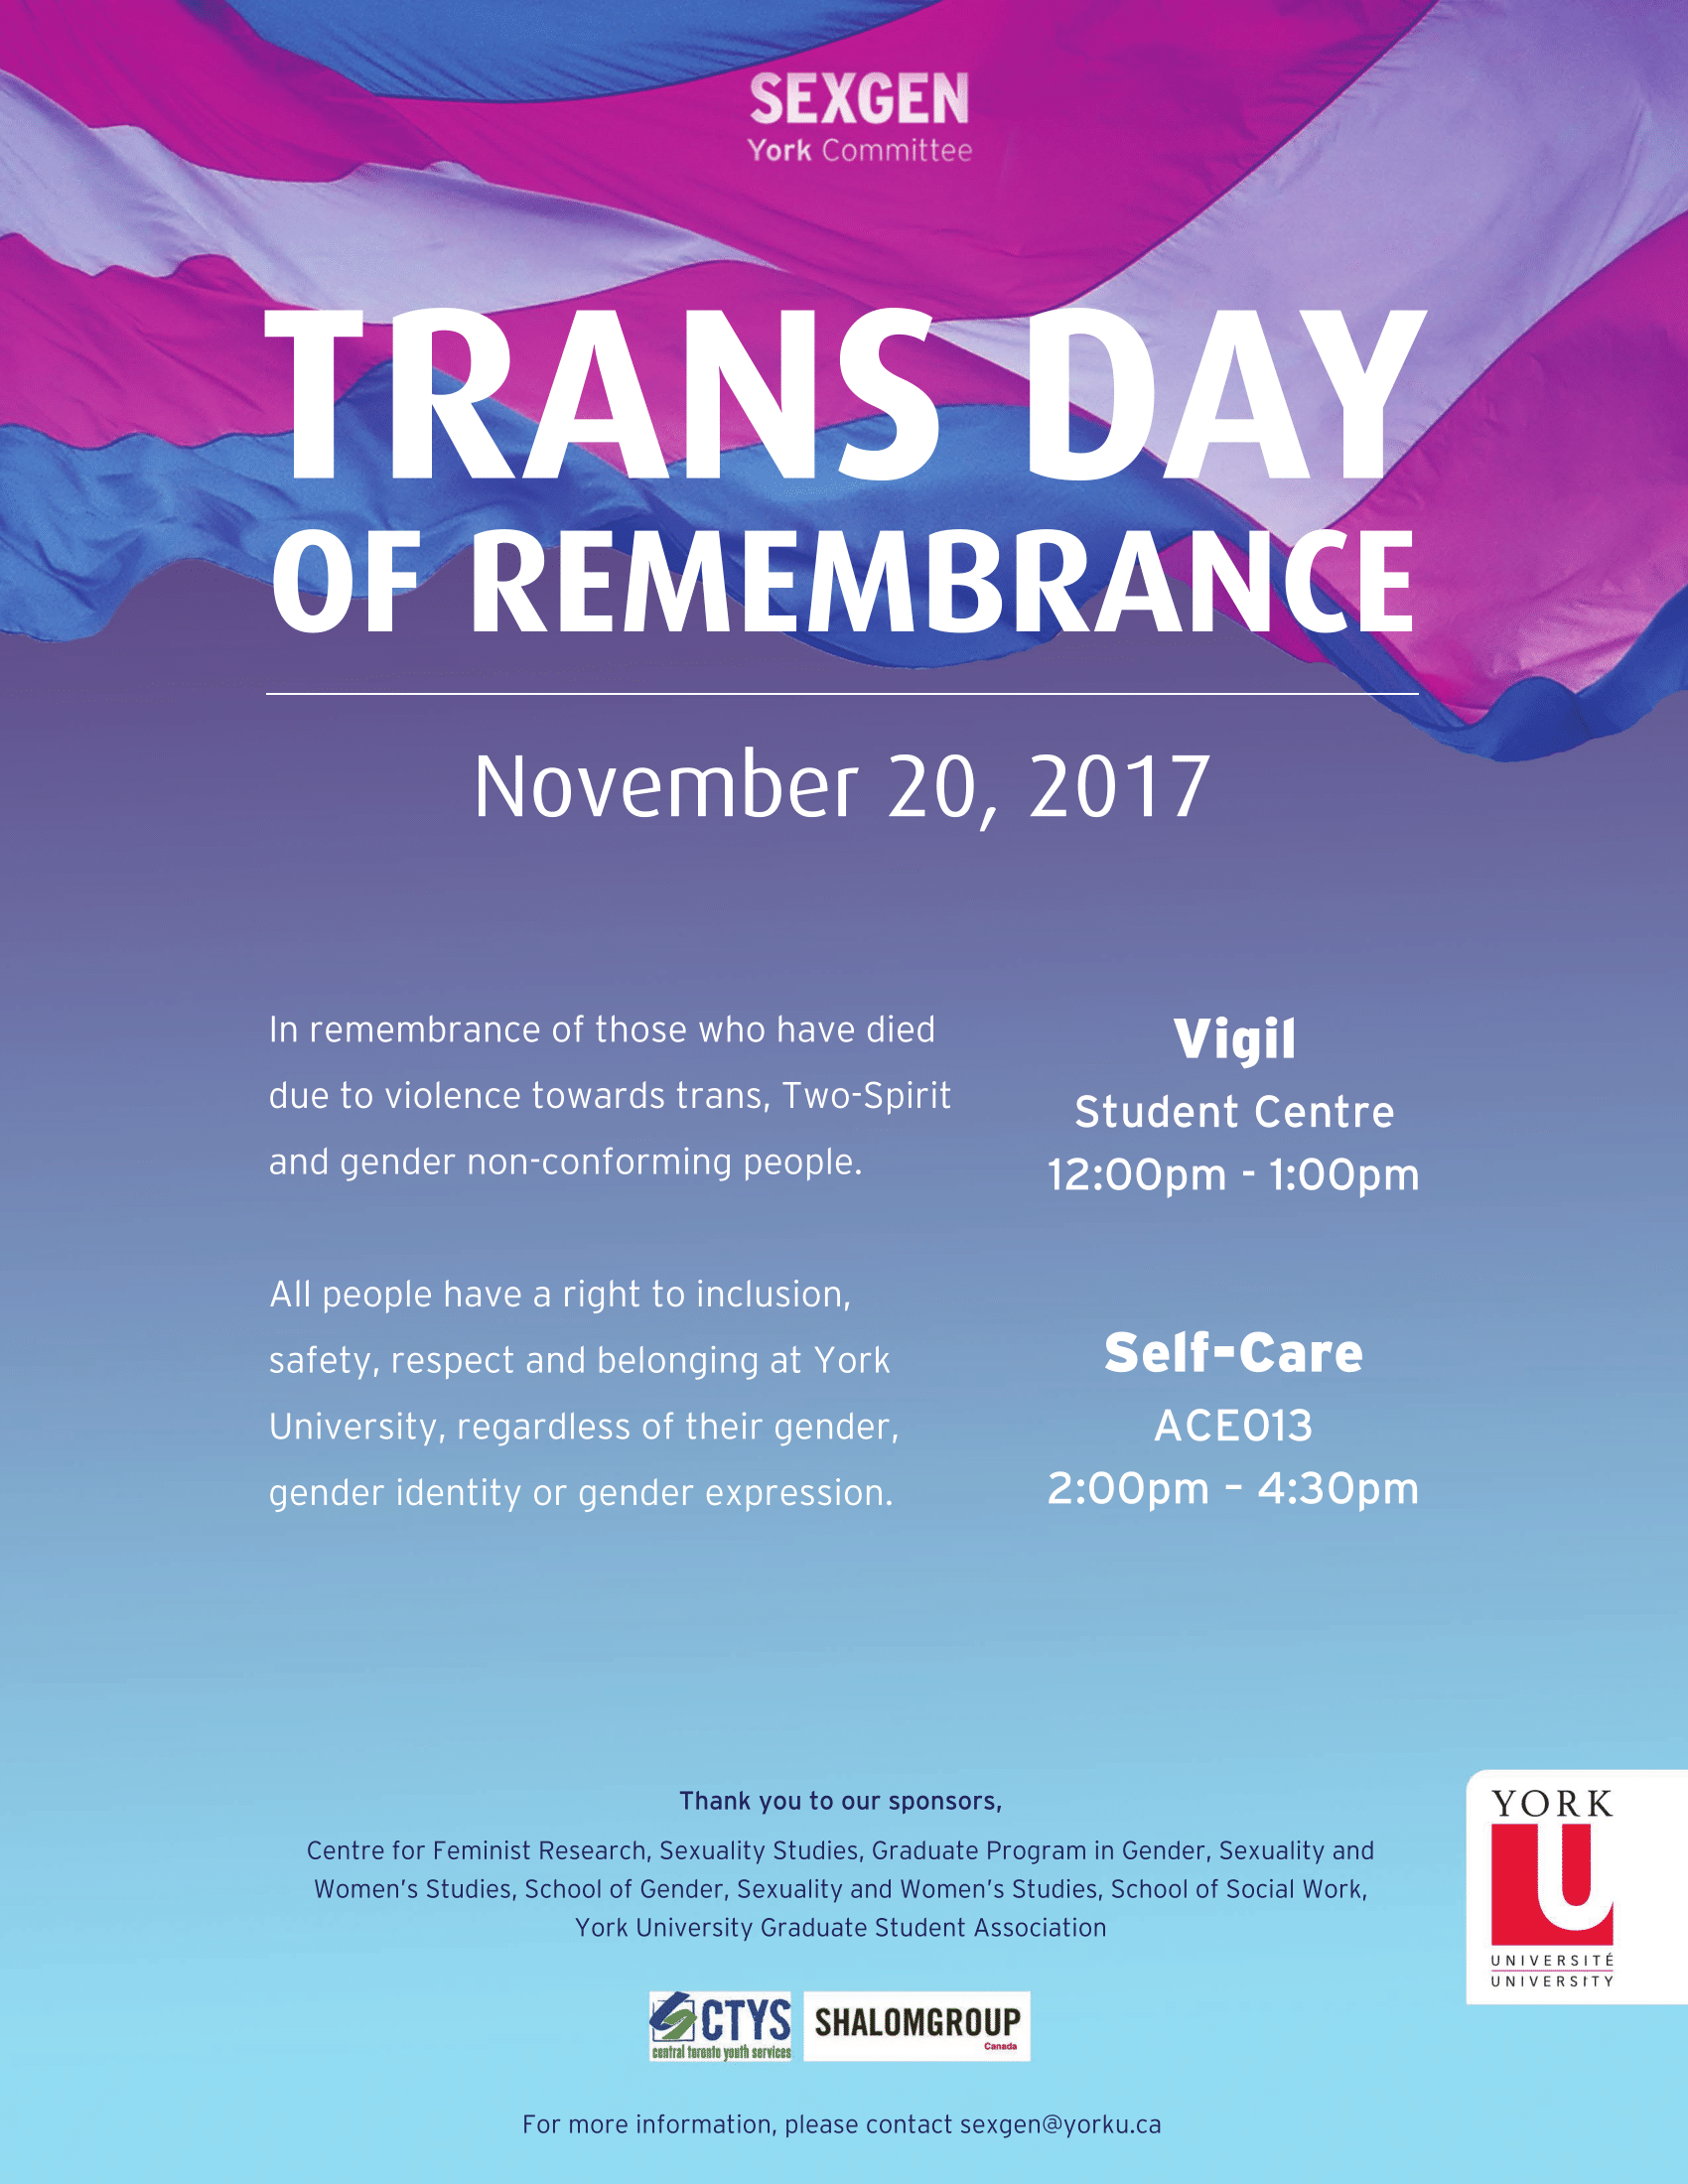 "[Poster: The words ""SexGen York Committee"" written in white font over a blue, magenta and light purple flowing flag that goes across the top of the poster. Then the words ""Trans Day pf Remembrance"" in white bold font and then a white line, followed by the date ""Monday, November 20th"" in white font. On one side of the poster is a description in white font which reads ""In remembrance of those who have died due to violence towards trans, Two-Spirit and gender non-conforming people.  All people have a right to inclusion, safety, respect and belonging at York University, regardless of their gender, gender identity or gender expression"". On the other side of the poster is the text ""Vigil"" in white bold font with the location underneath ""Student Centre"" followed by the time ""12:00pm to 1:00pm"". Below this is the text ""Self Care"" in white bold font with the location underneath ""Accolade East, room 013"" and then the time ""2:00pm to 4:00pm"". At the bottom of the poster reads the message in dark blue font ""Thank you to our sponsors, Centre for Feminist Research, Sexuality Studies, Graduate Program in Gender, Sexuality and Women's Studies, School of Gender, Sexuality and Women's Studies, School of Social Work, York University Graduate Association"". Following the text is a logo with a white background and a blue and green symbol and the upper case letters C,T,Y,S, in blue font with the text ""Central Toronto Youth Services"".  Beside is another logo with a white background and the text ""Shalom Group"" in dark black font with the text ""Canada"" in red font. Beside is the York University logo of a white background with the text ""York"" in black font, followed by the upper case letter U in white font against a red background followed by the text ""university"" in English and French. At the bottom of the poster is the text ""For more information, please contact sexgenatyorku.ca. The whole poster has a blue background that goes from dark blue at the top to light blue at the bottom.]."